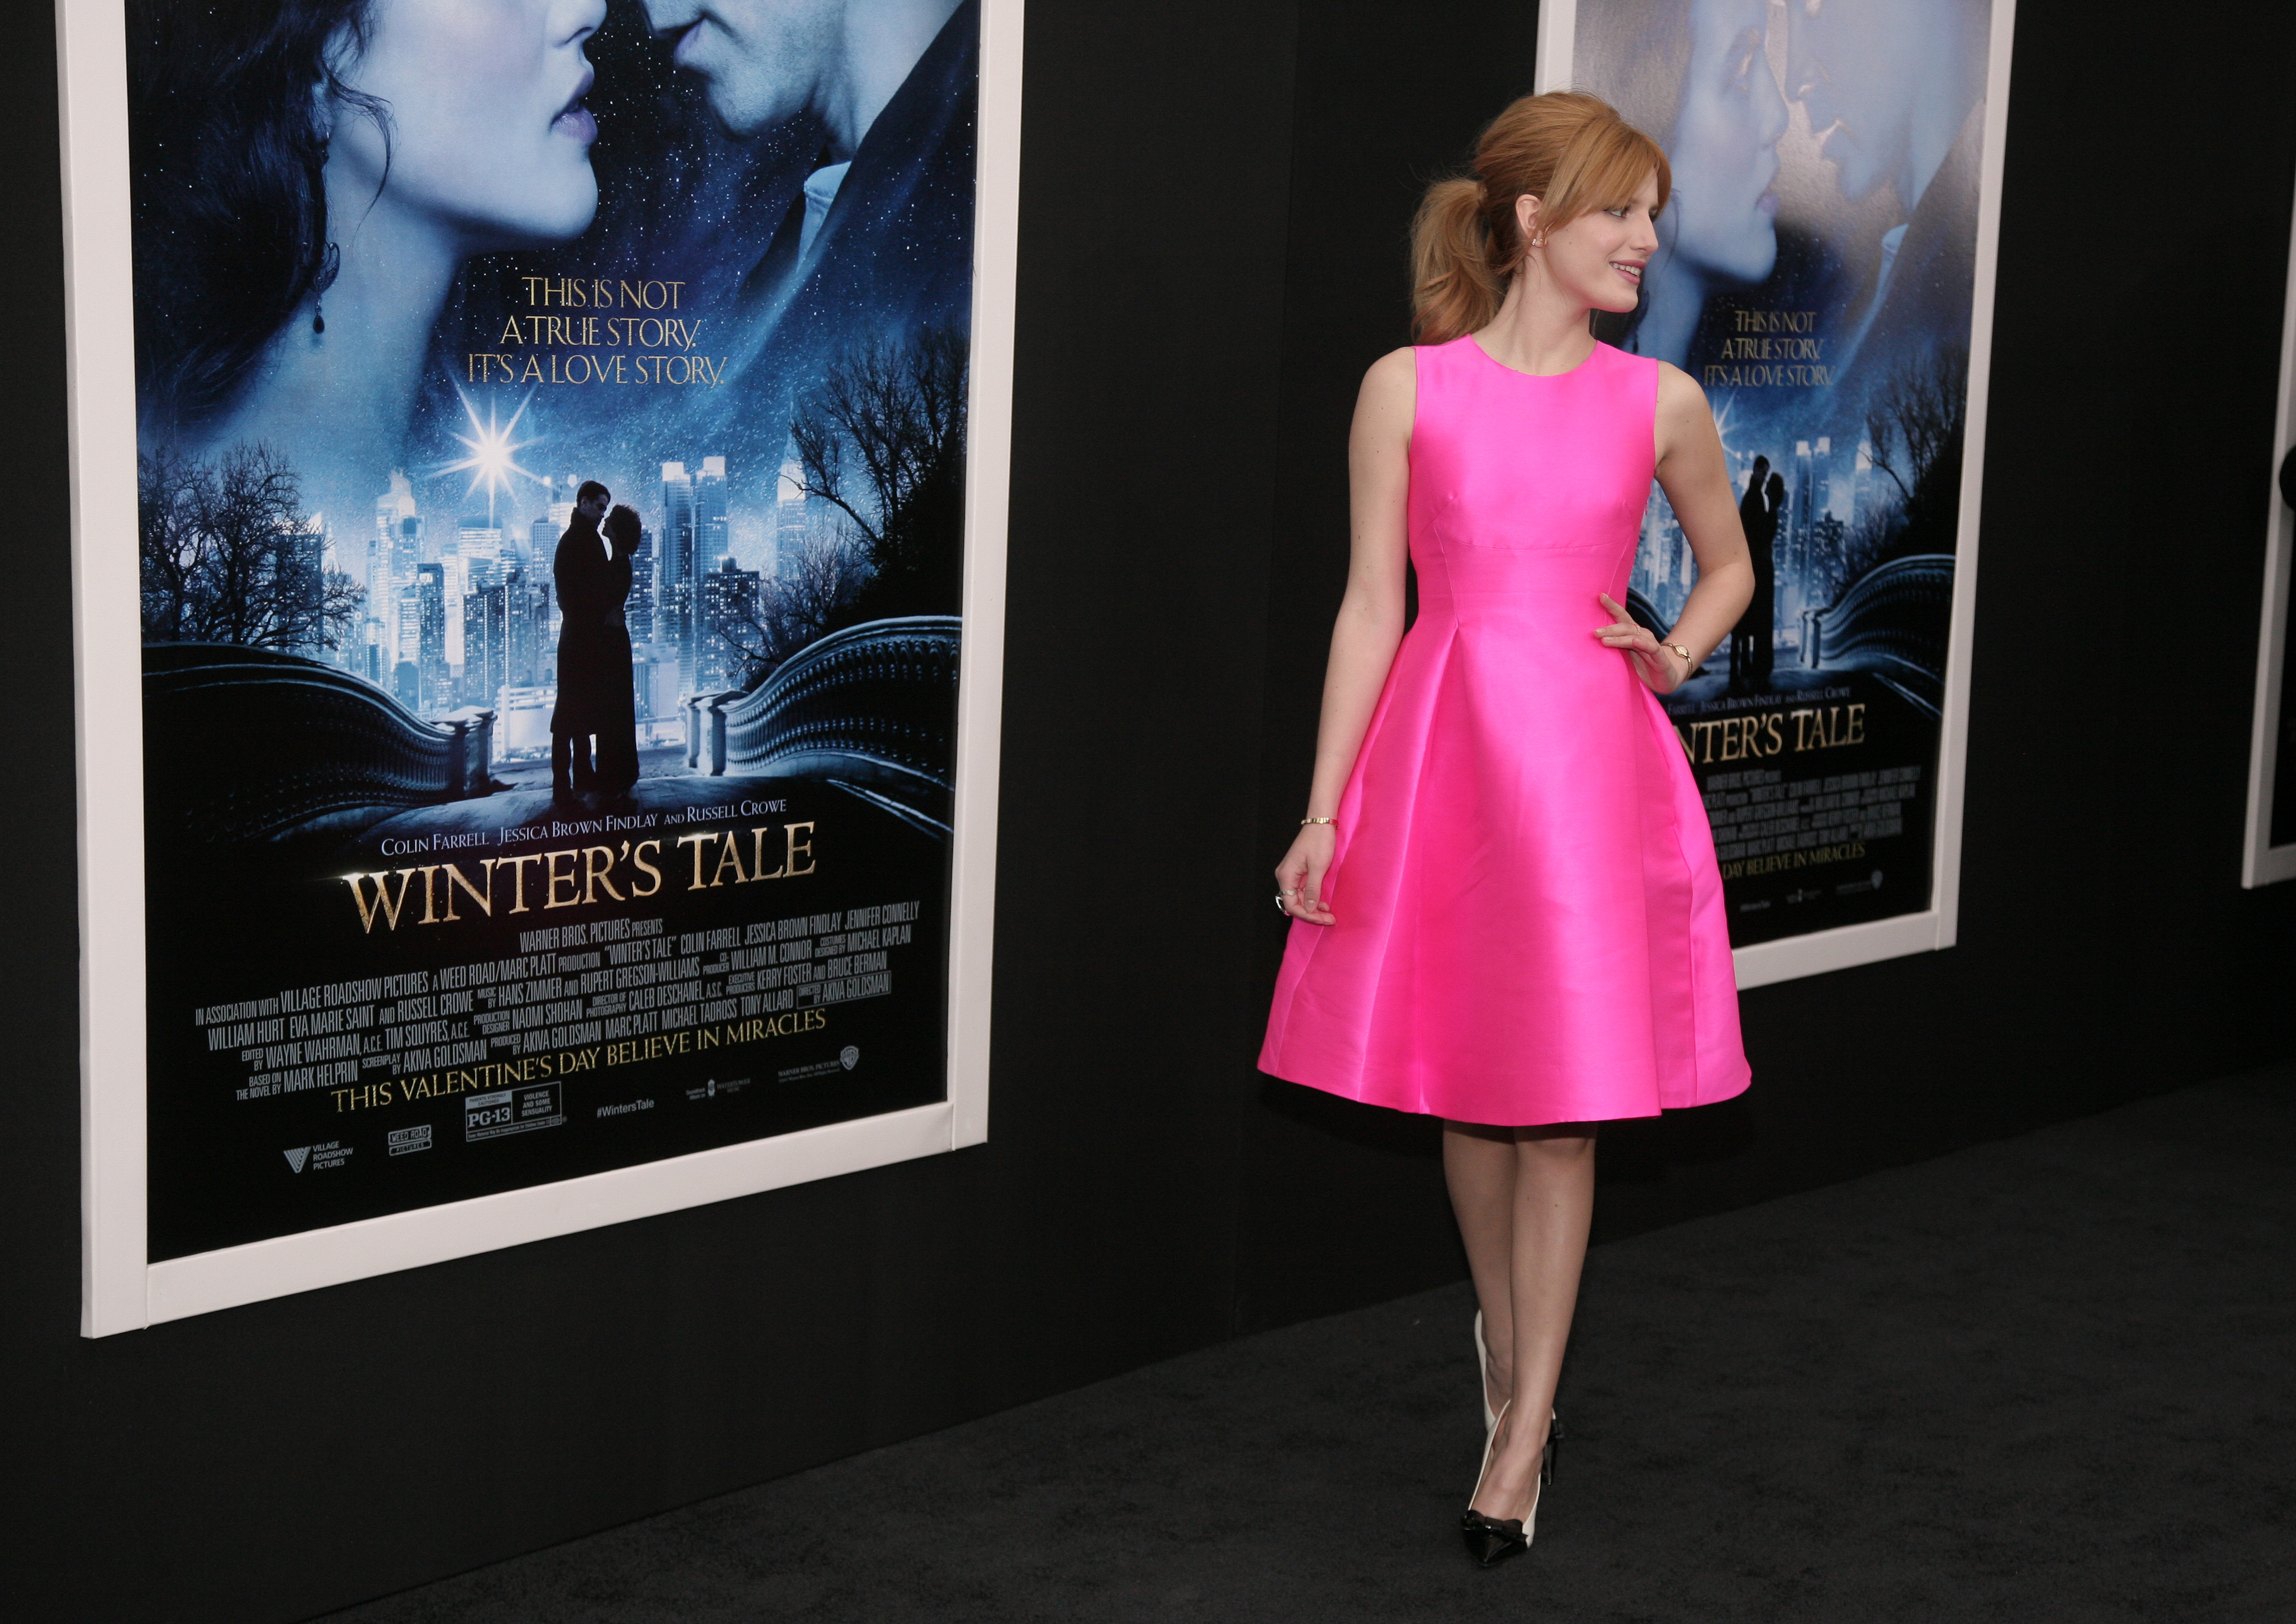 <div class='meta'><div class='origin-logo' data-origin='AP'></div><span class='caption-text' data-credit='Andy Kropa /Invision/AP'>Actress Bella Thorne attends the world premiere of &#34;Winter's Tale&#34; on Tuesday, Feb. 11, 2014 in New York. (Photo by Andy Kropa/Invision/AP)</span></div>